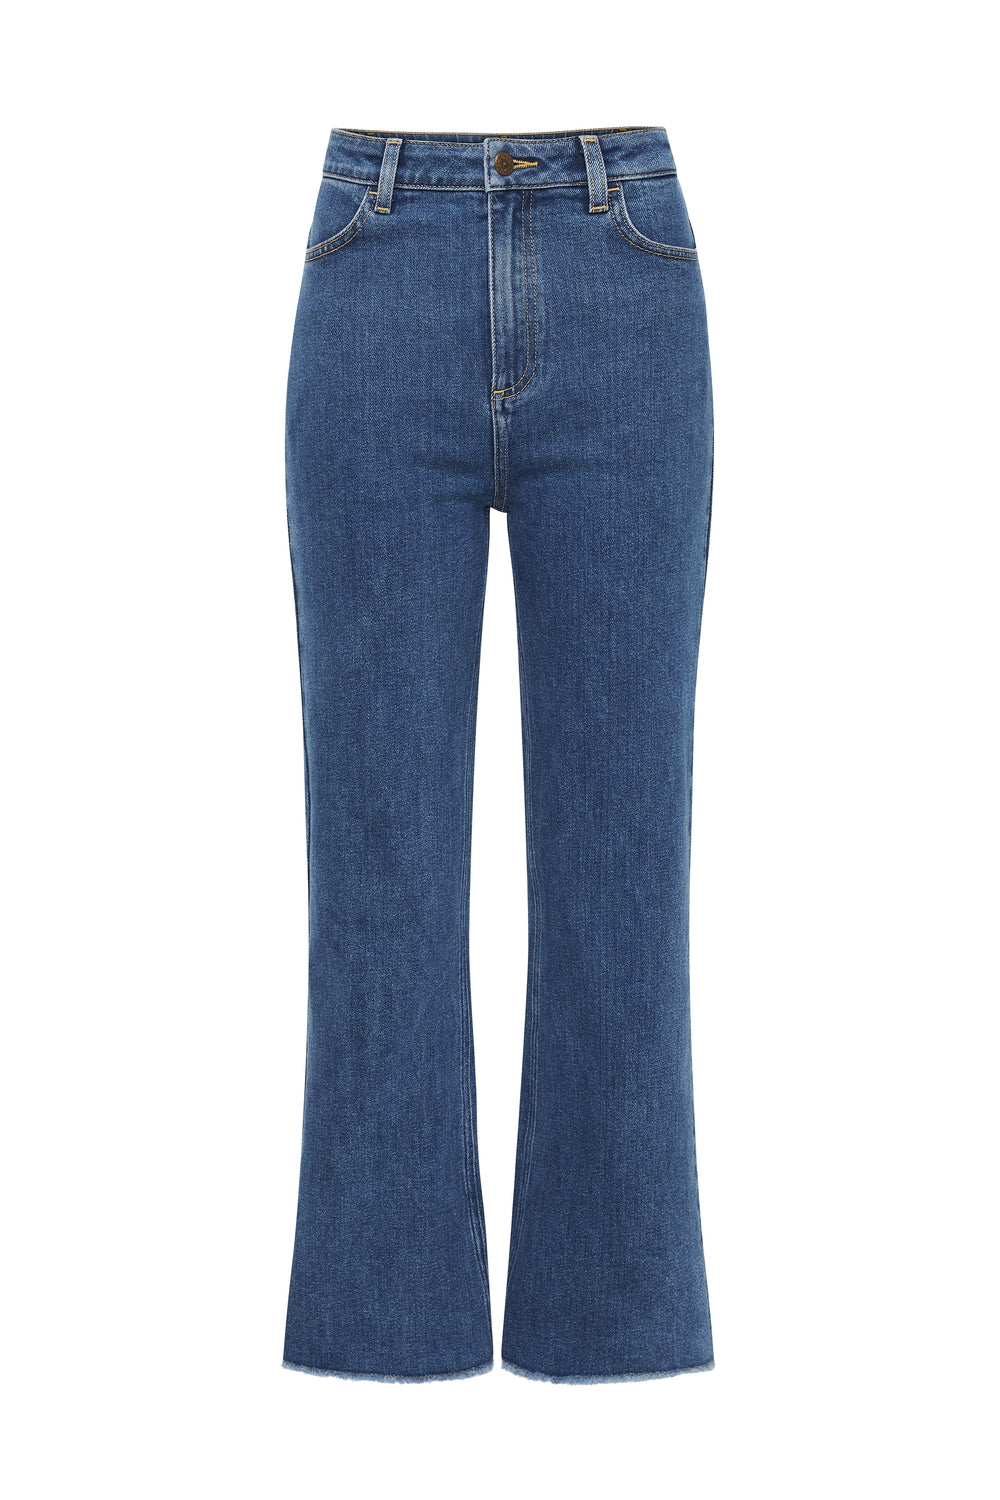 Hideaway Cropped Jeans in Vintage Blue